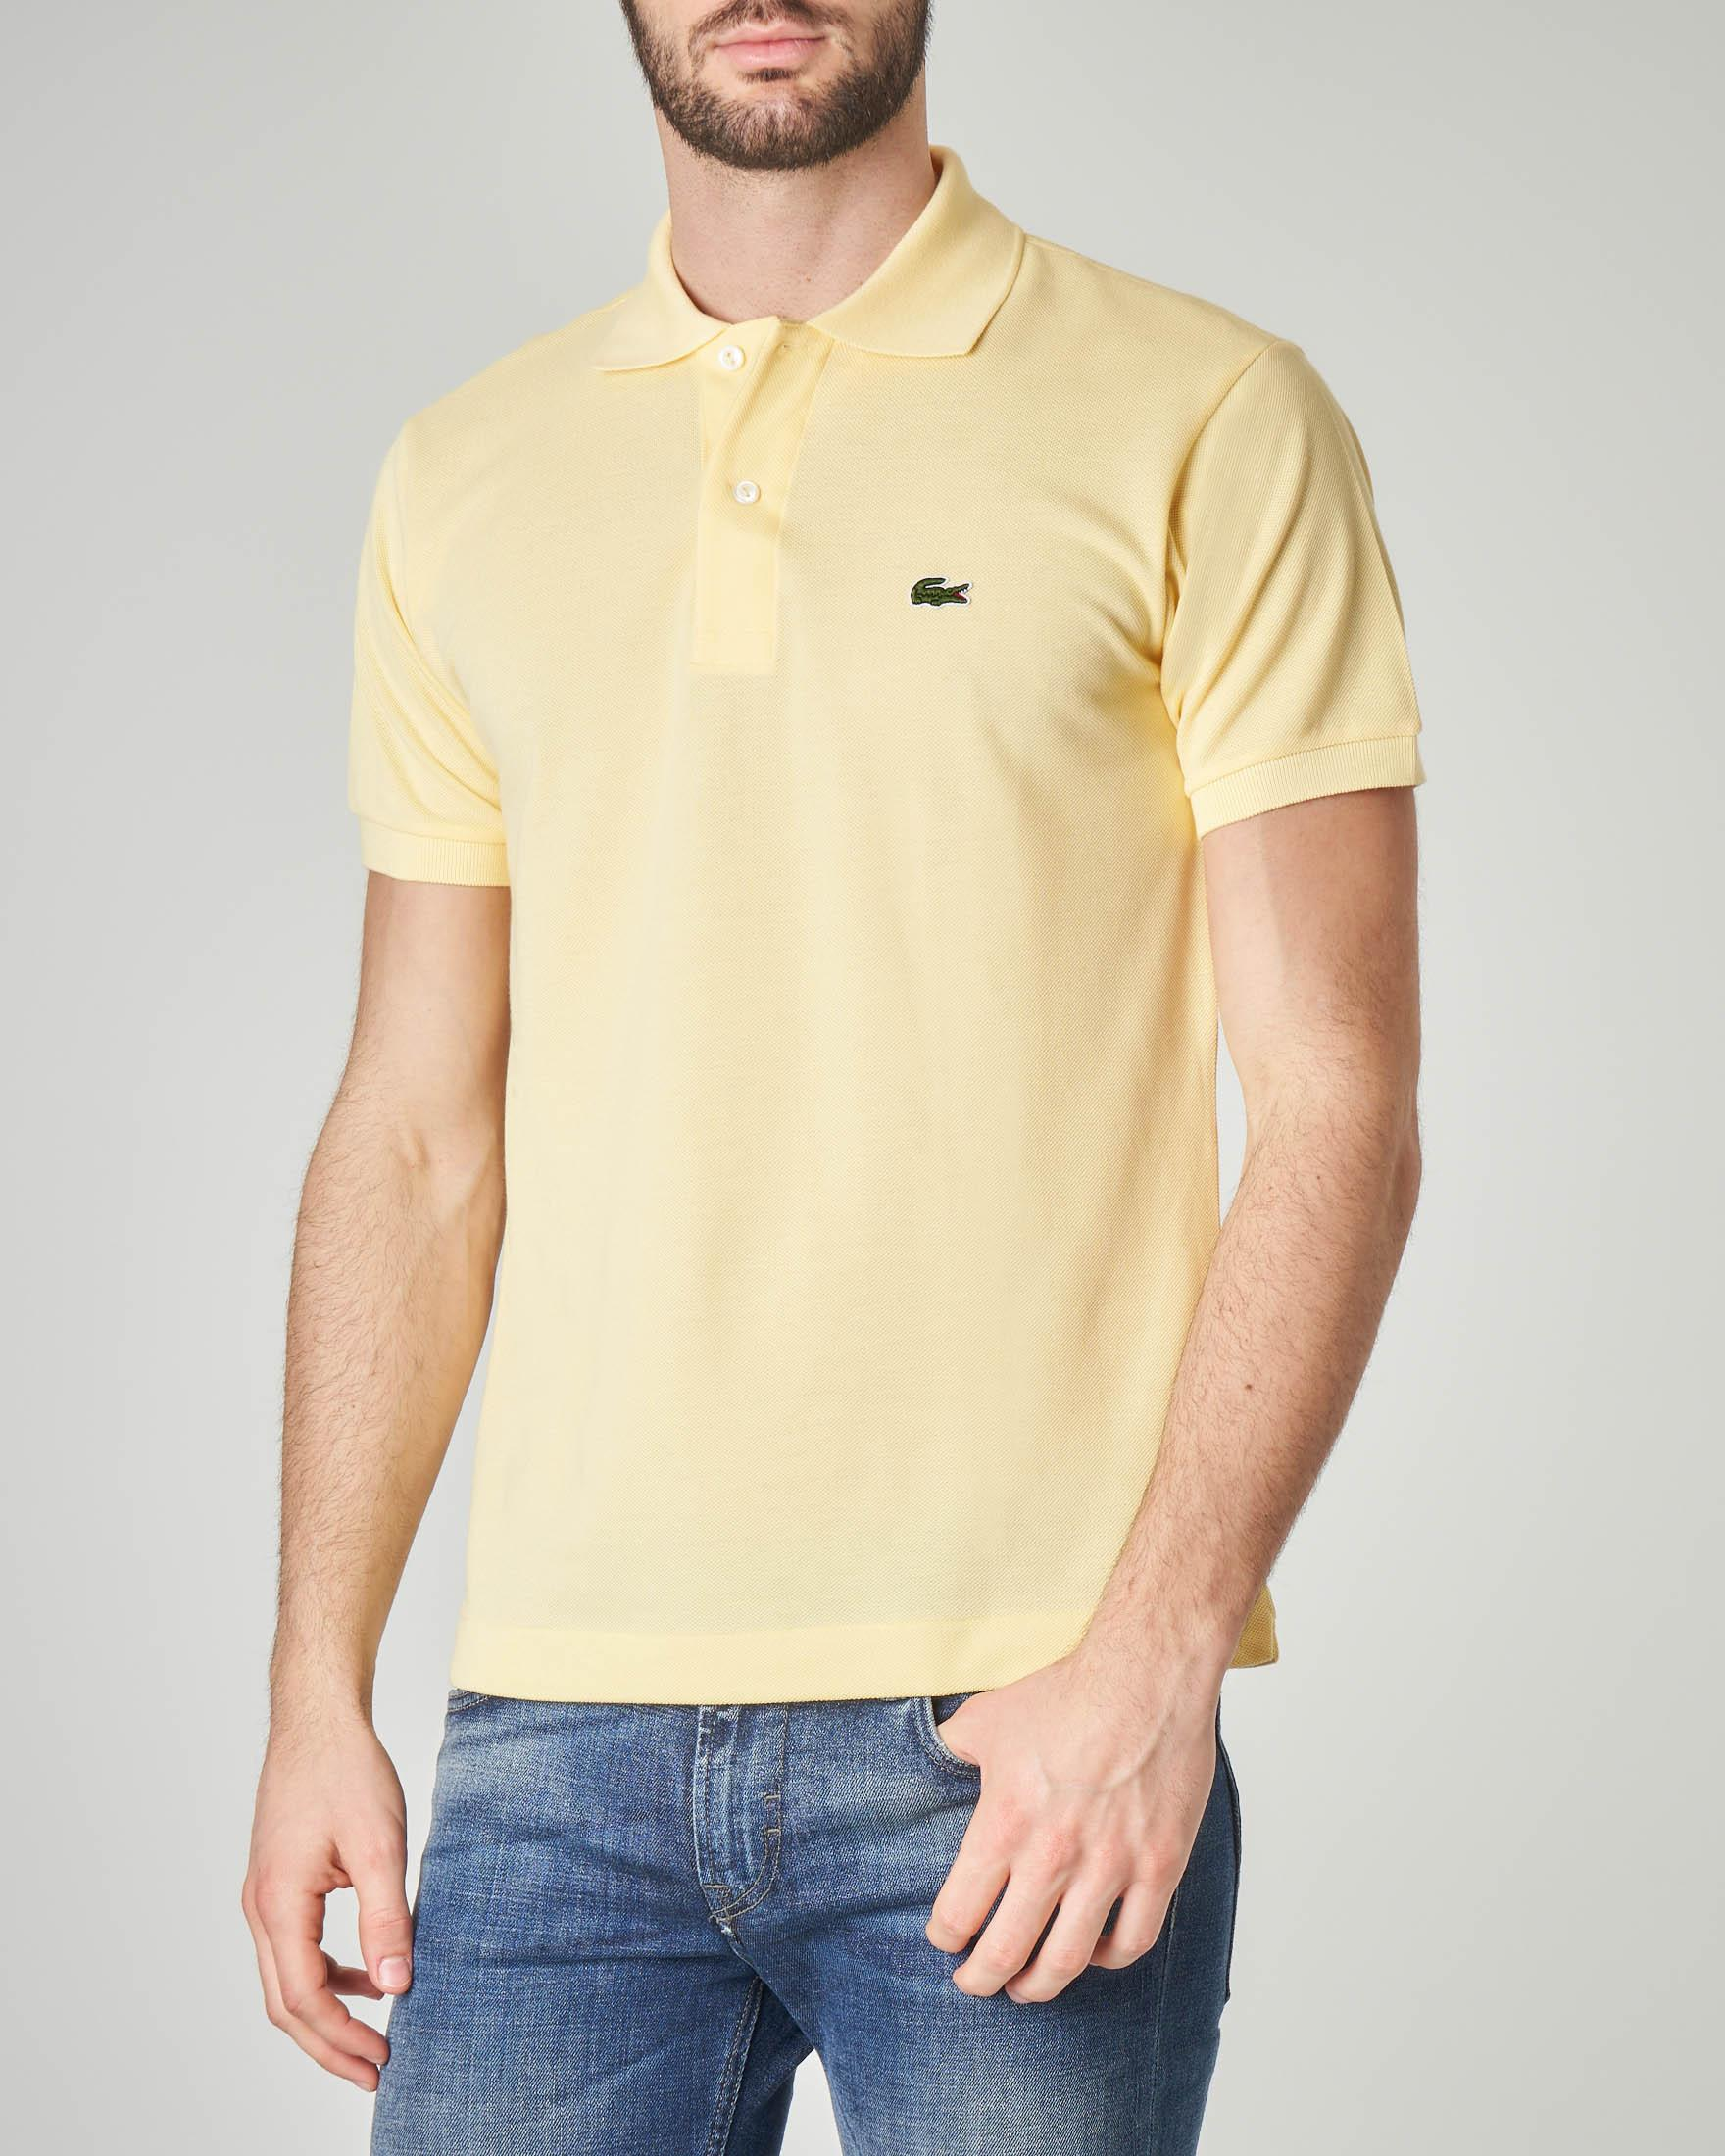 Polo gialla classic fit 1212 in petit piqué